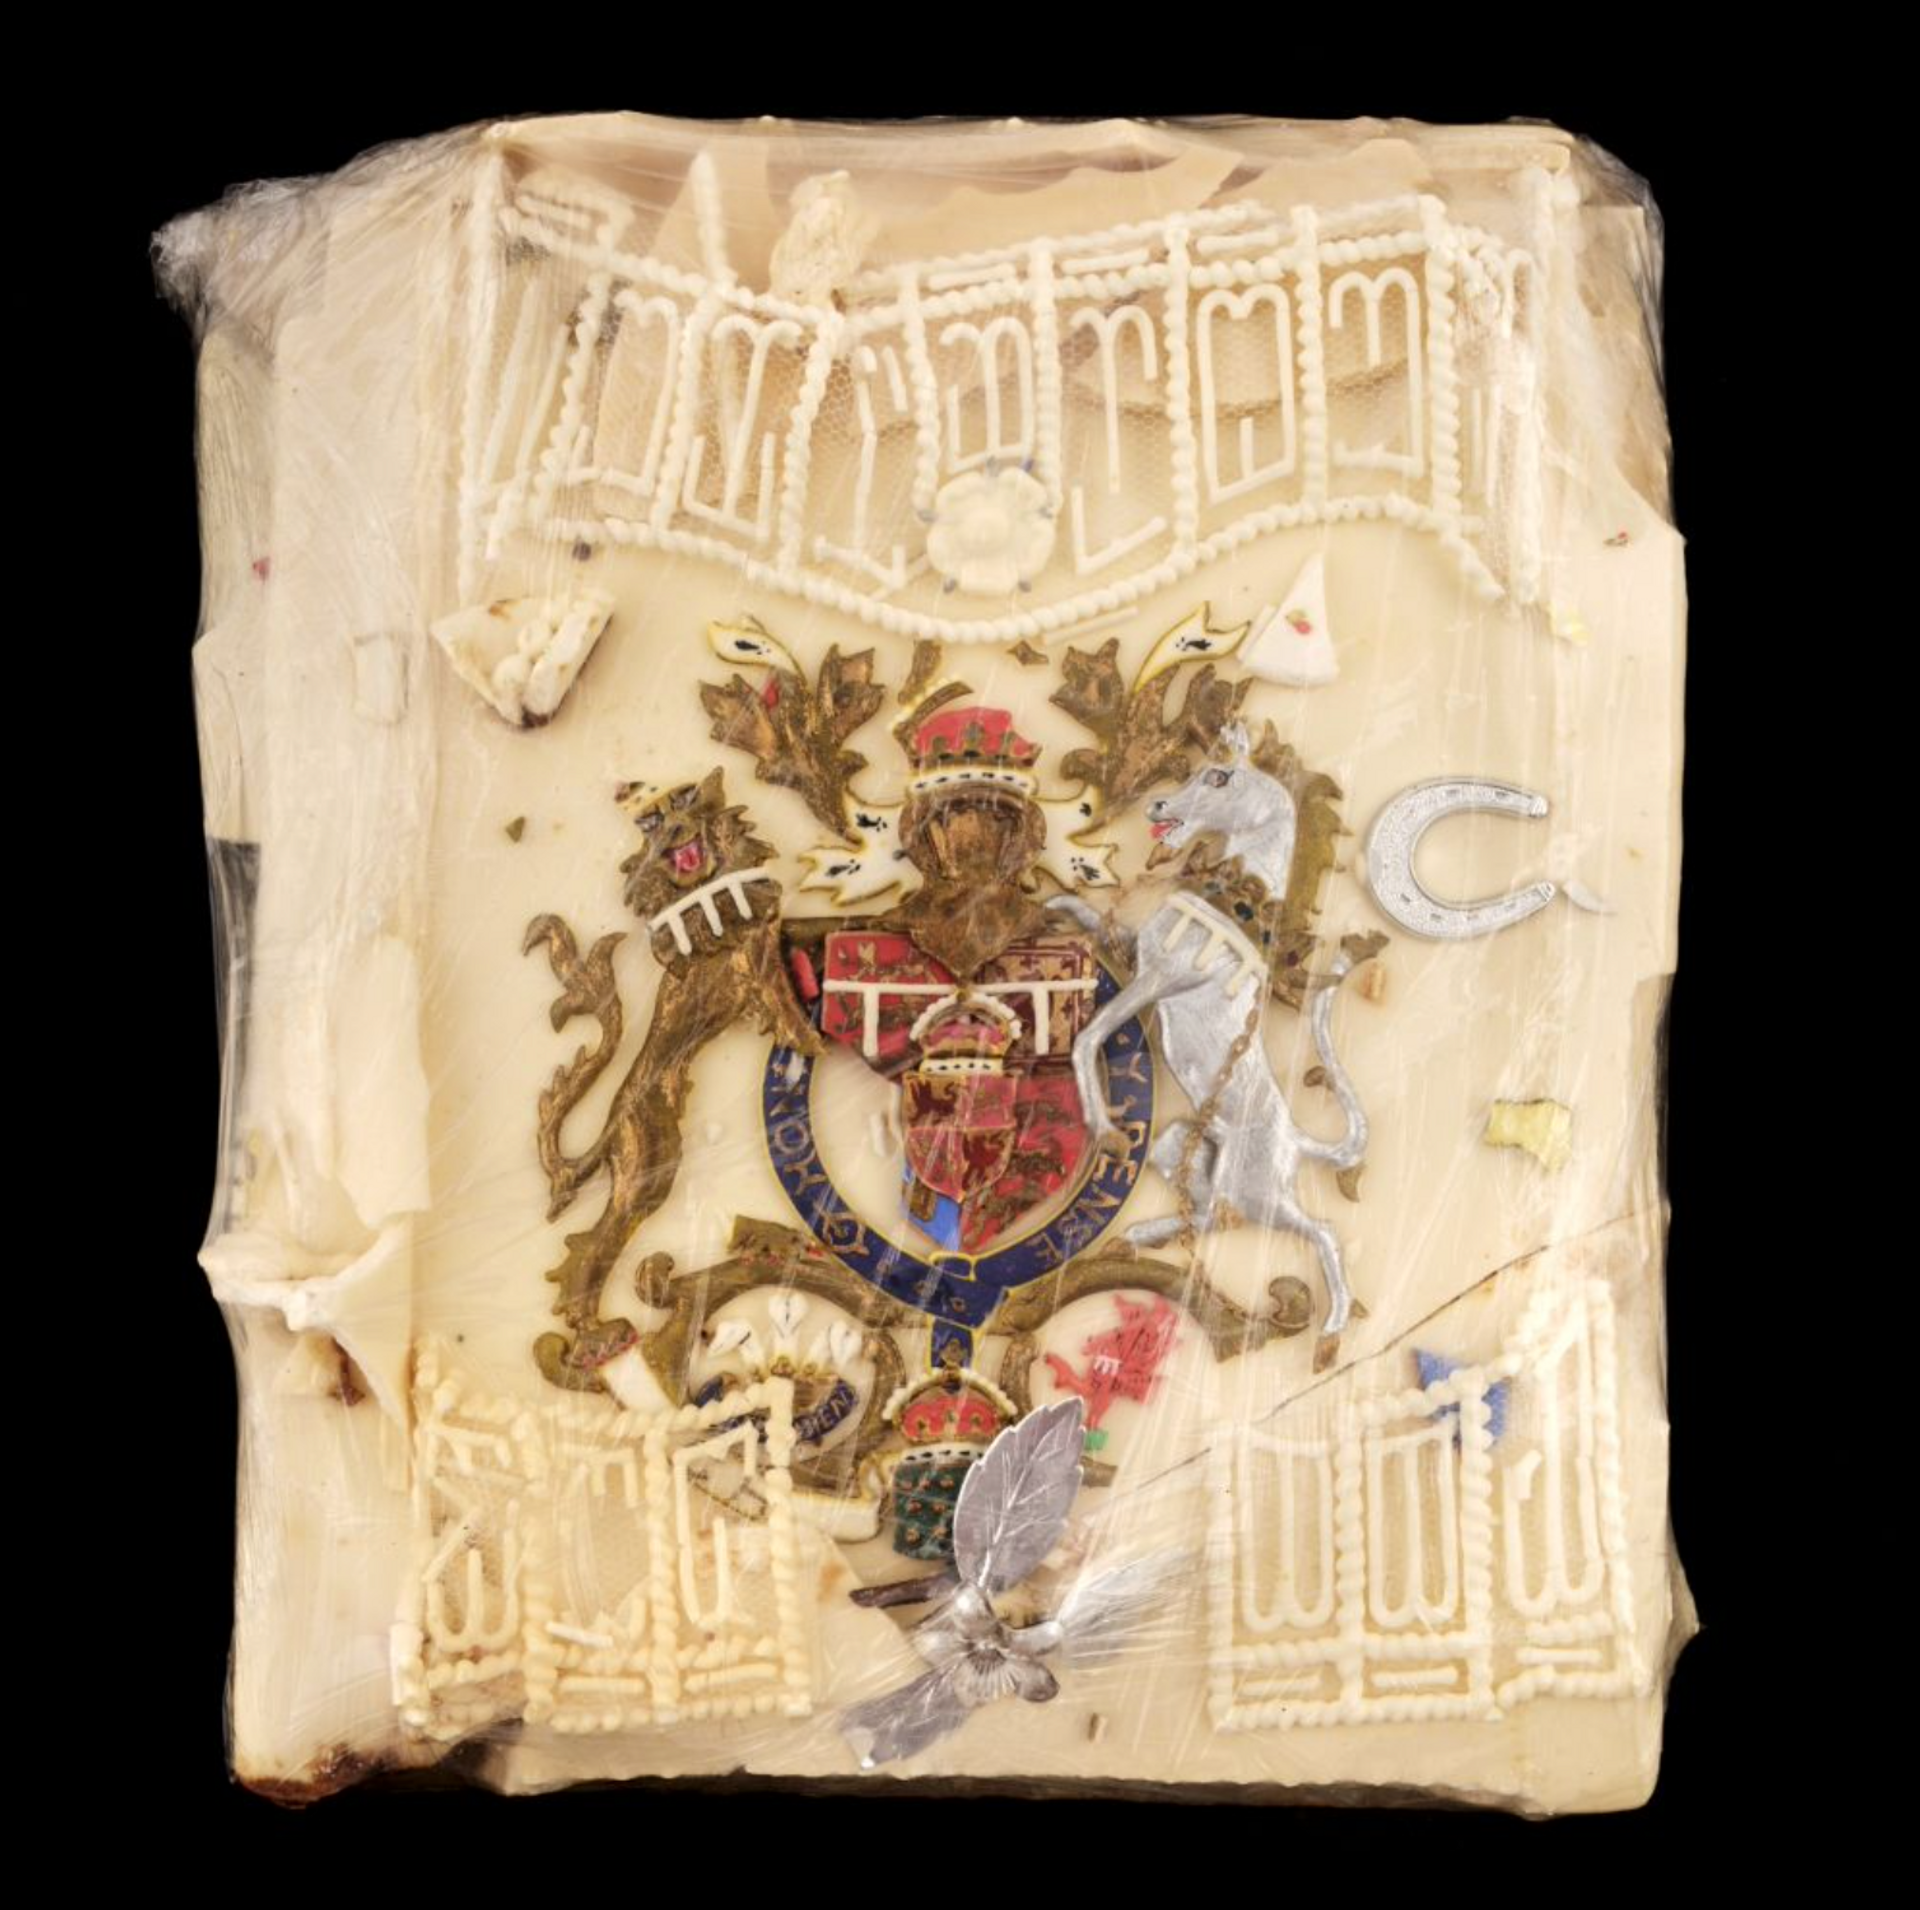 The slice of cake icing with the Royal Coat-of-Arms from the wedding of Prince Charles and Lady Diana Spencer in 1981 Courtesy of Dominic Winter Auctioneers